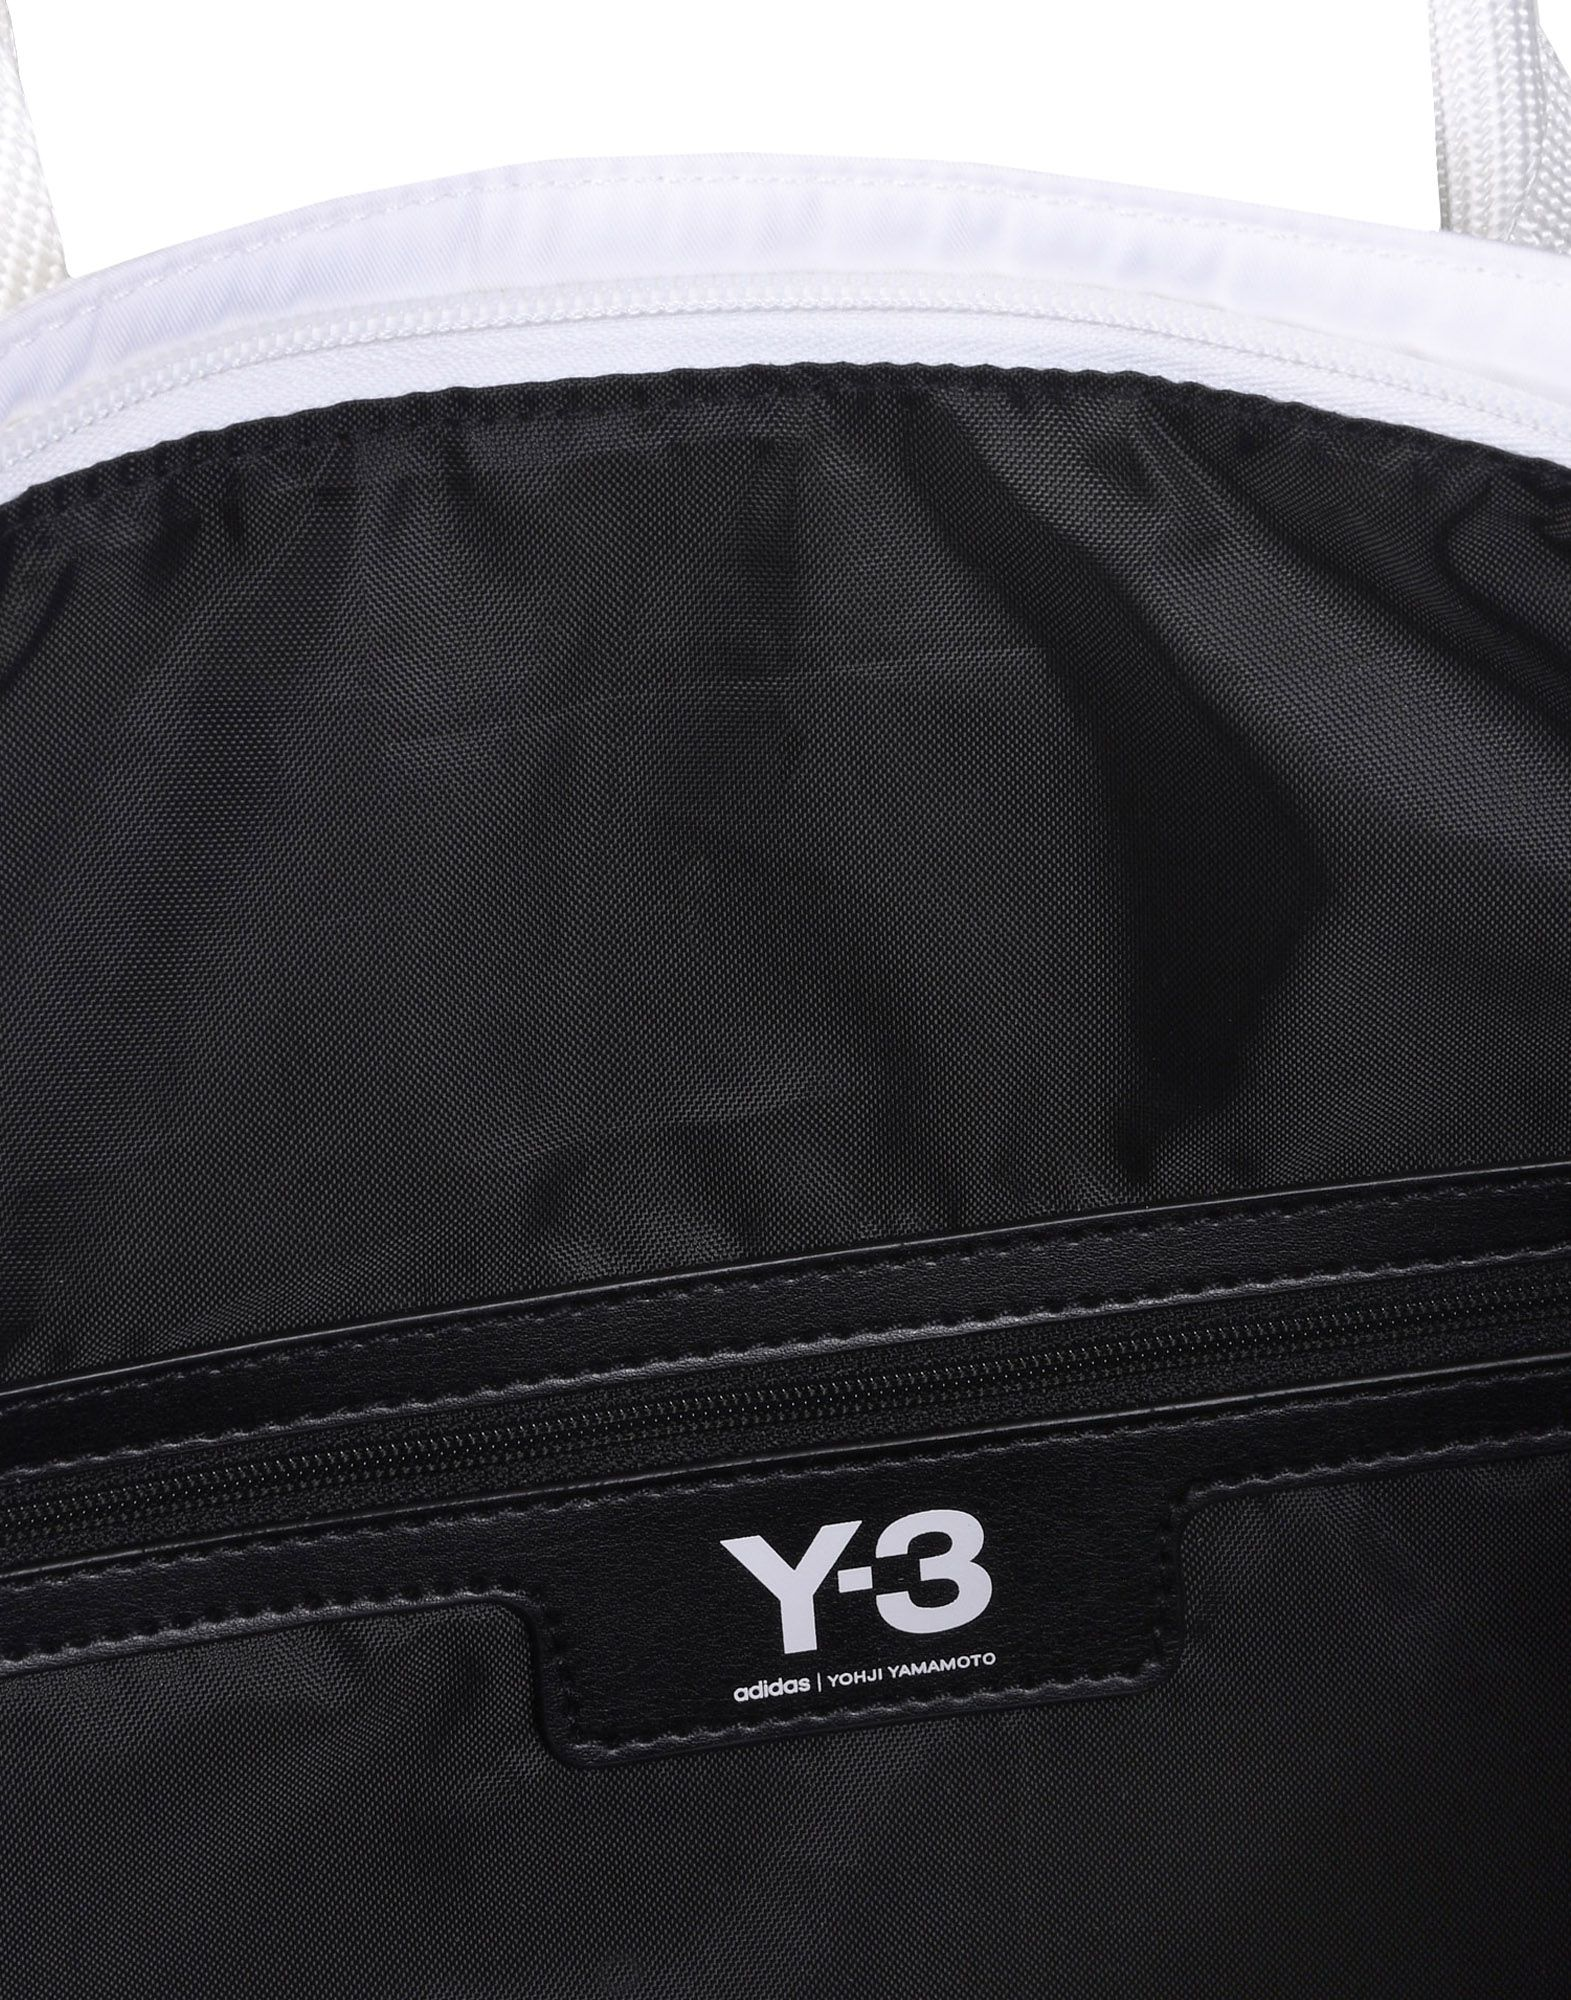 Y-3 Y-3 TOTE BAG Medium fabric bag E a